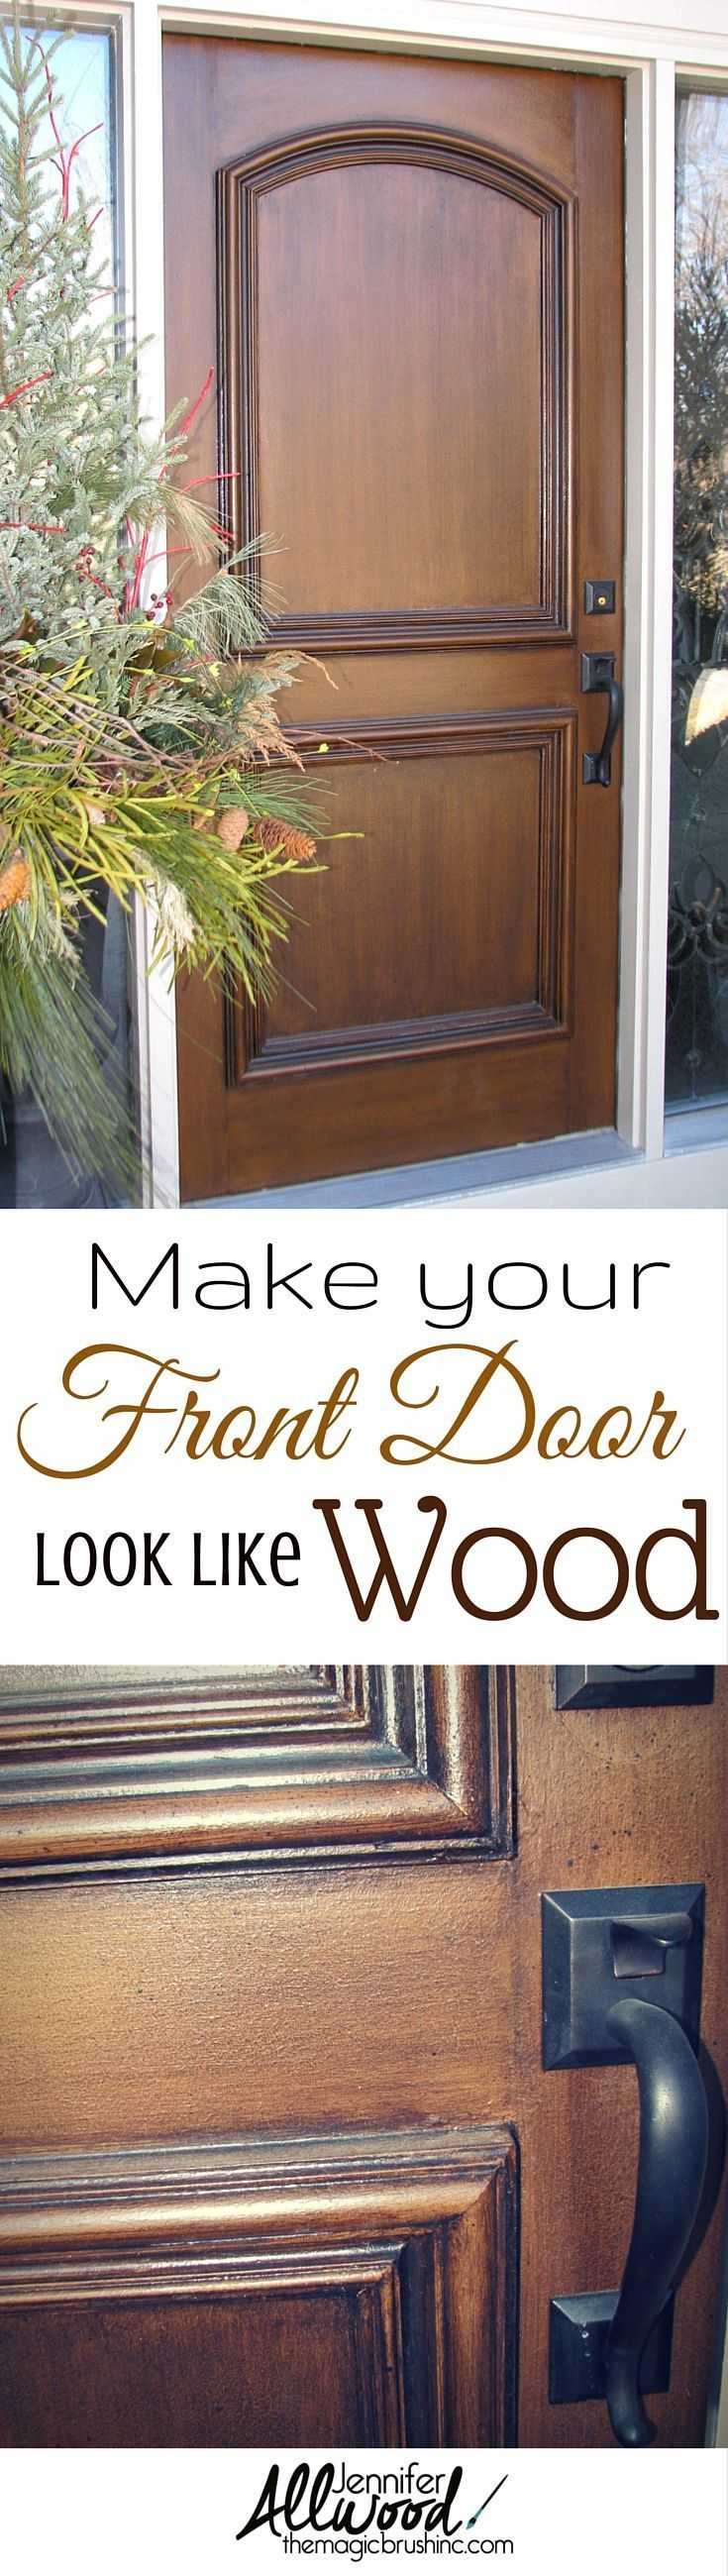 Minwax gel stain colors home depot wood stains color chart car tuning - How To Paint Garage Doors To Look Like Wood